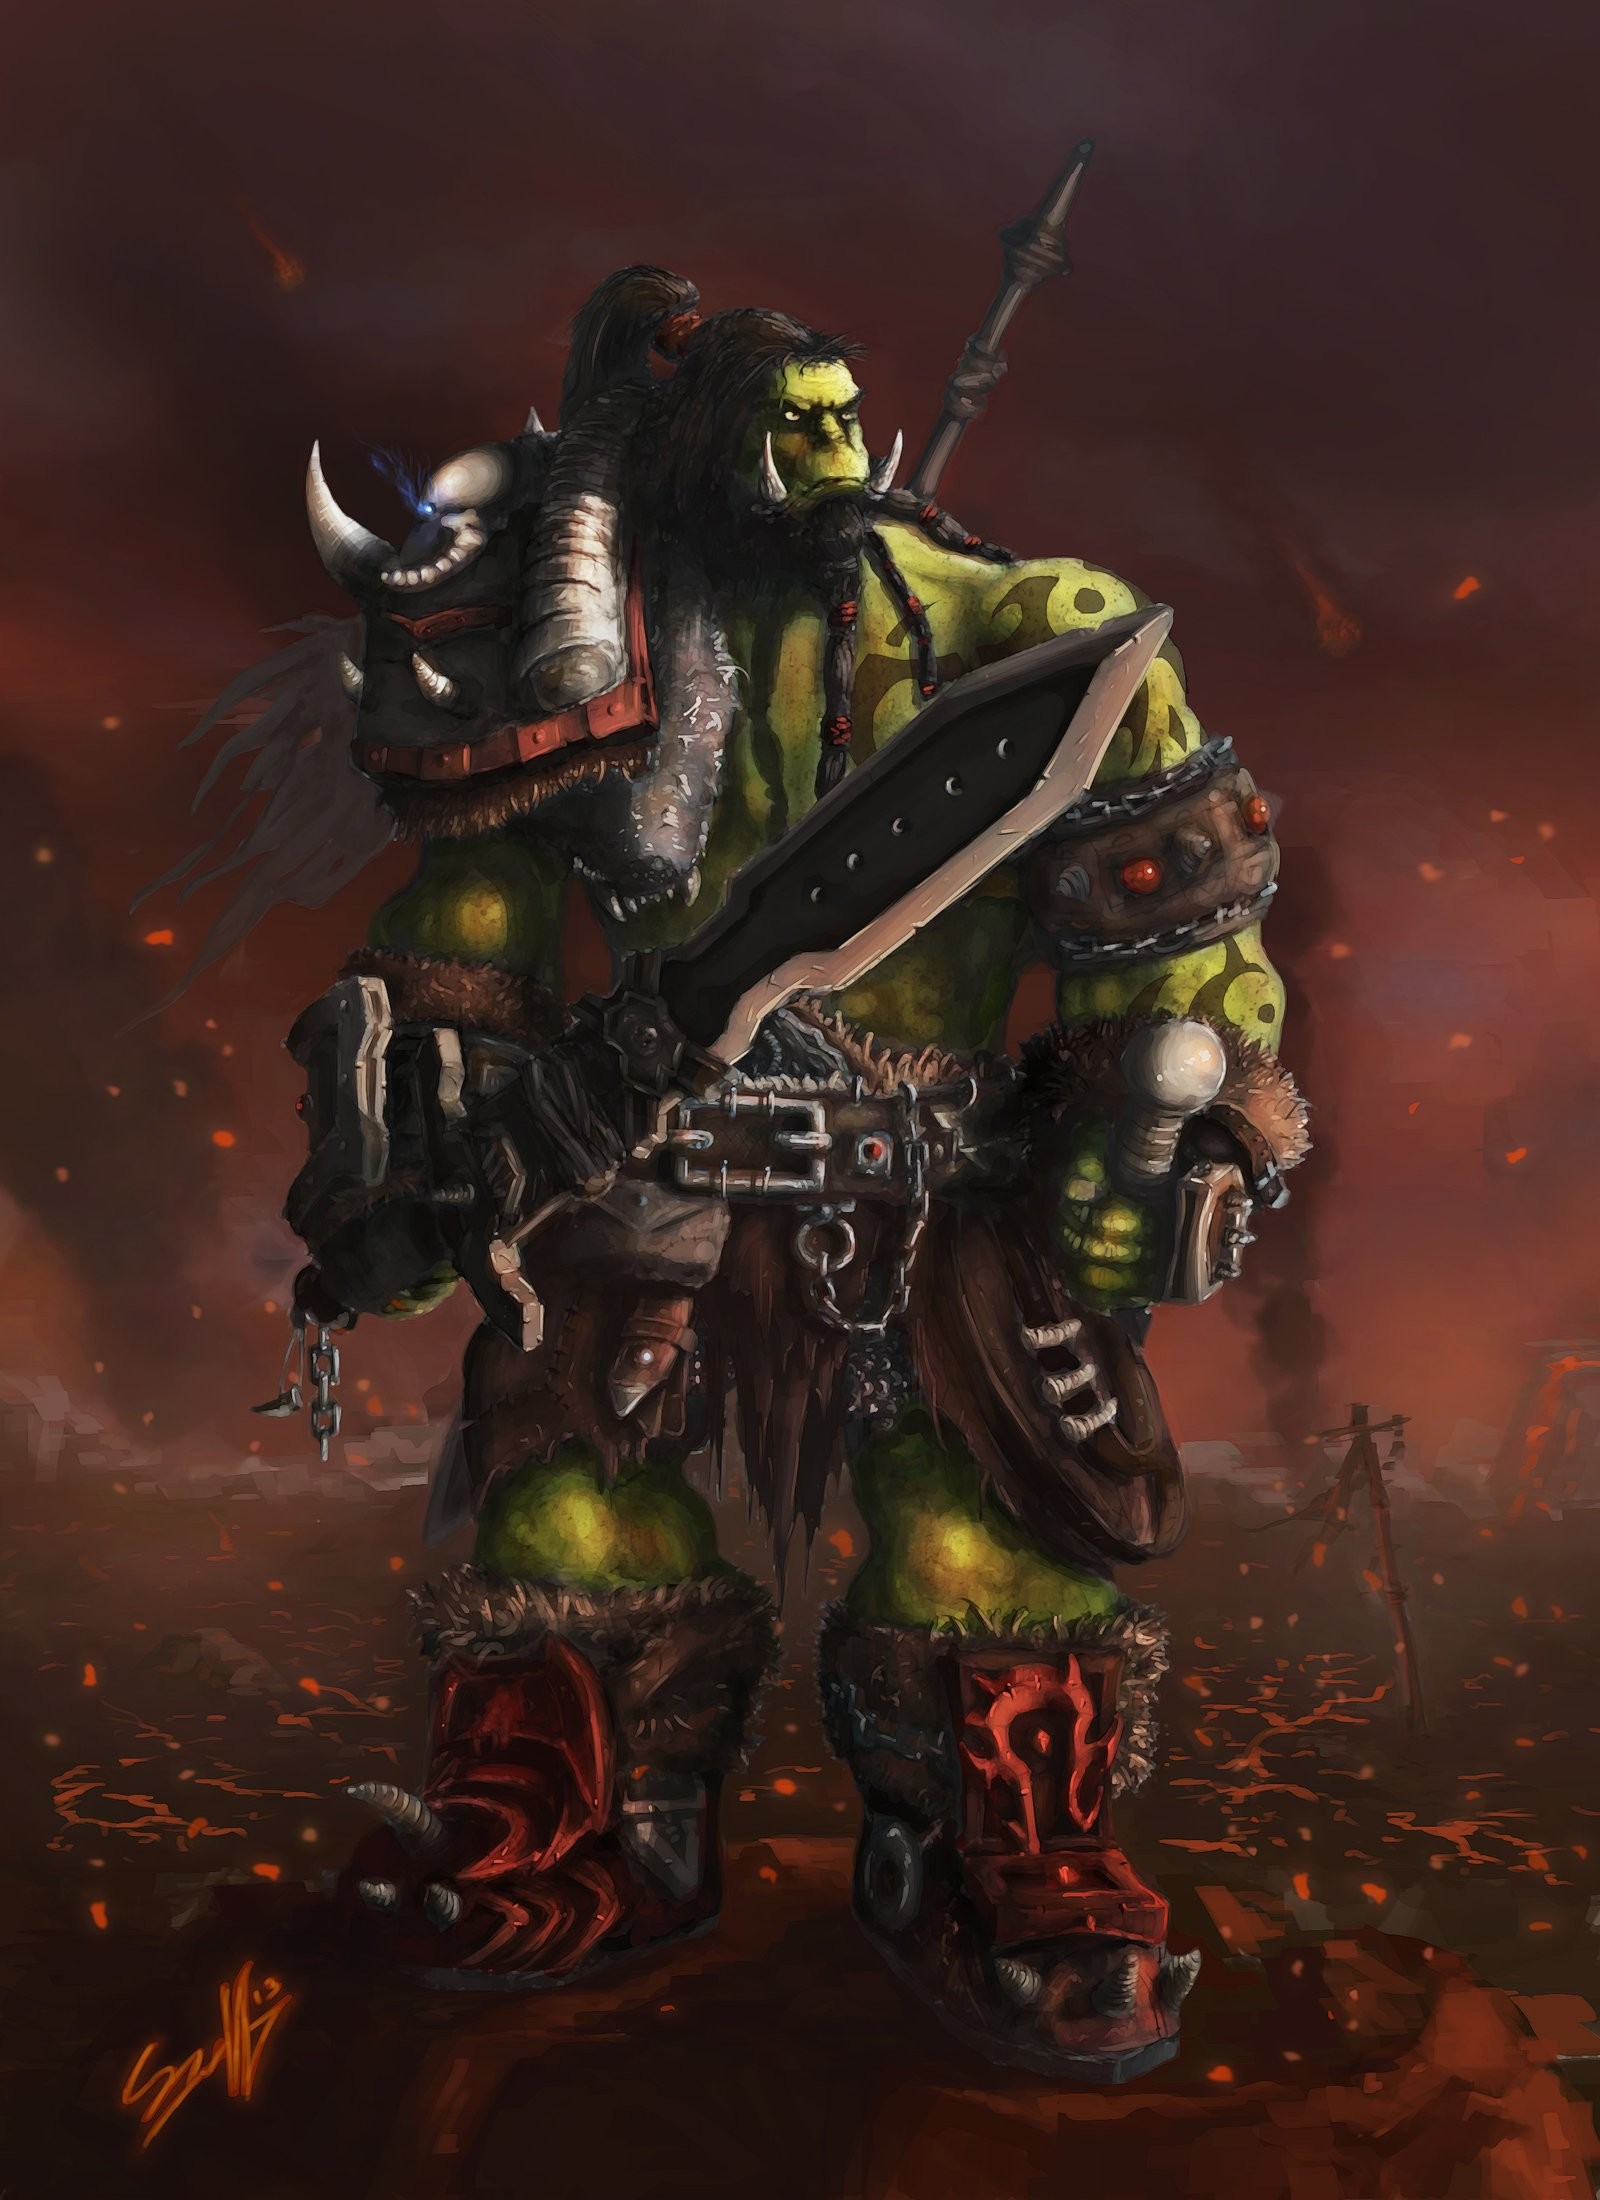 for wow orc shaman wallpaper displaying 19 good pix for wow orc shaman .